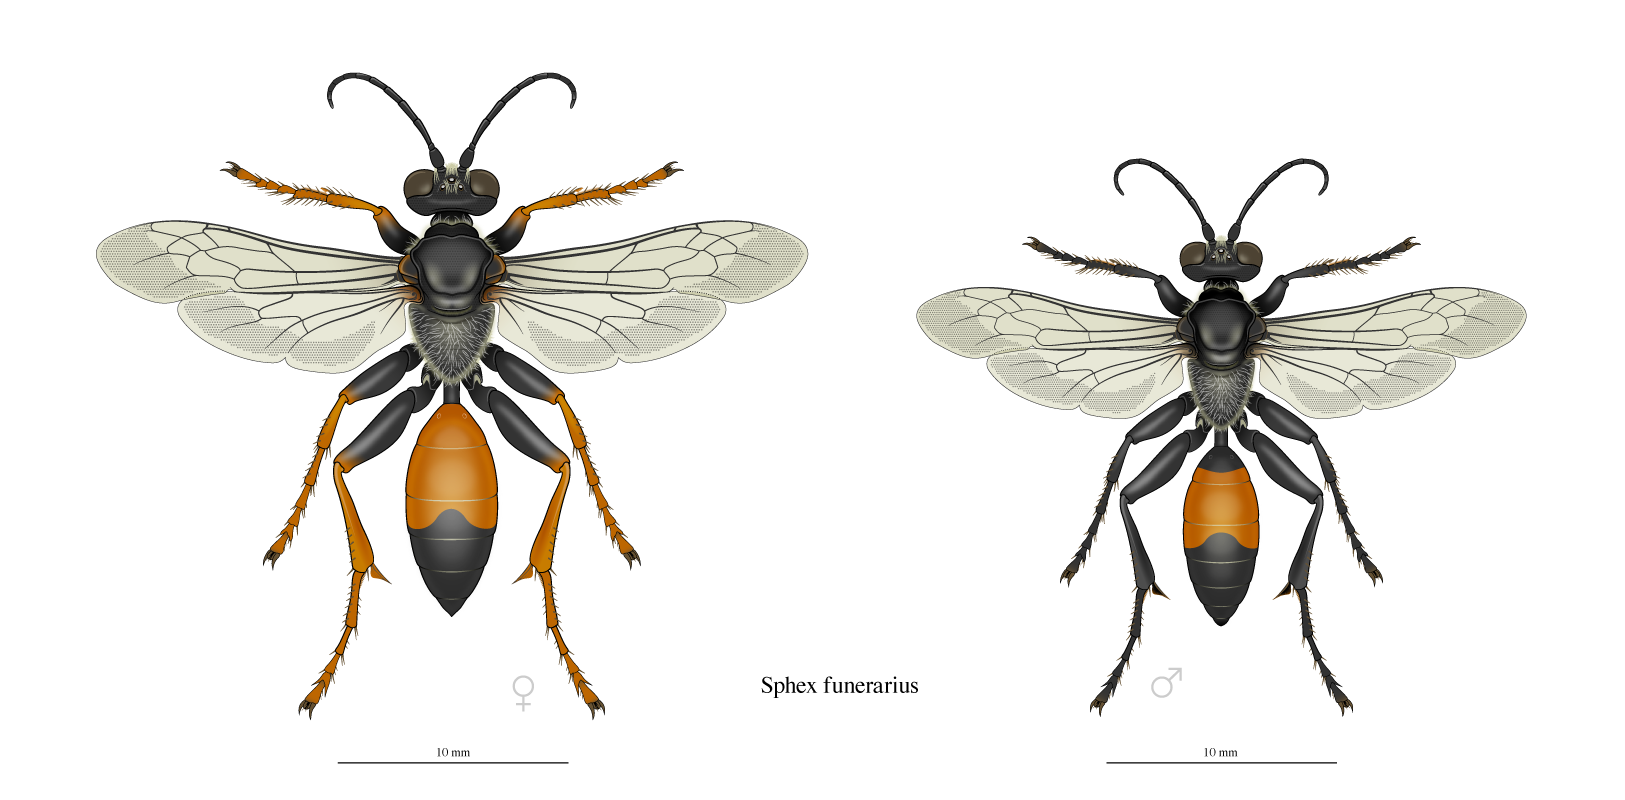 golden digger wasp dorsal view male and female